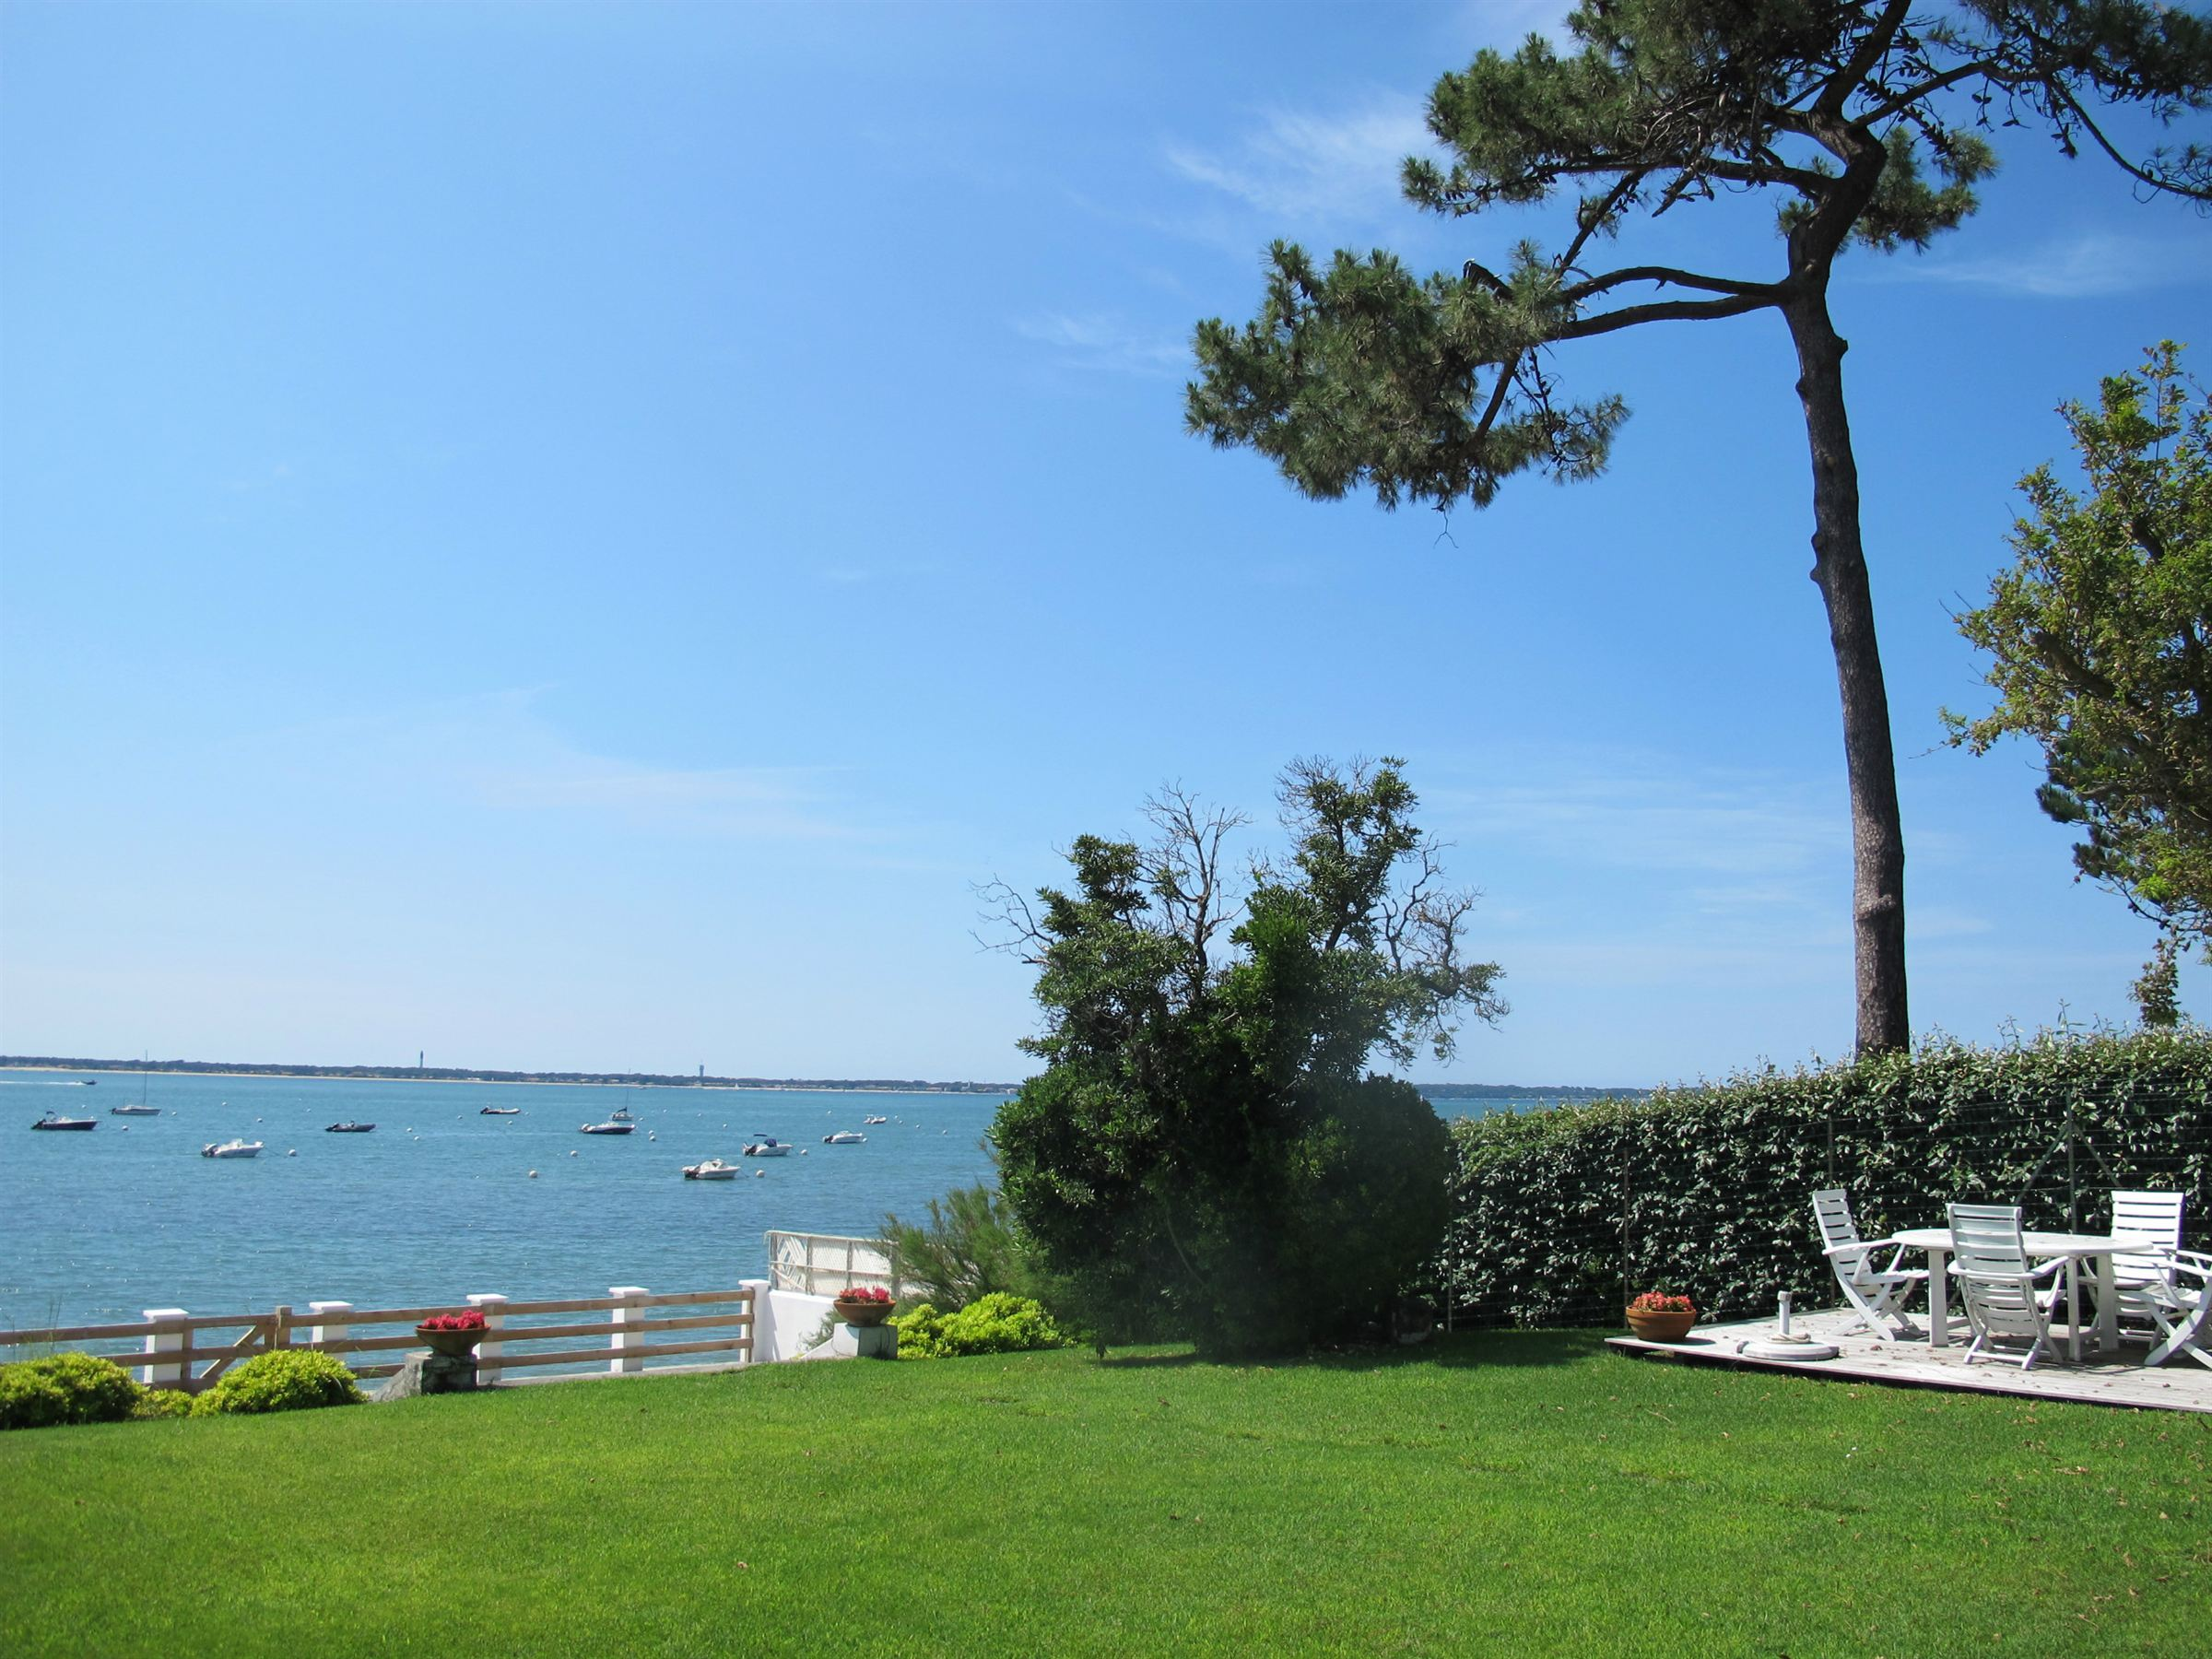 Property For Sale at PYLA SUR MER - LE MOULLEAU - LUXURY WATERFRONT SUMMER HOUSE